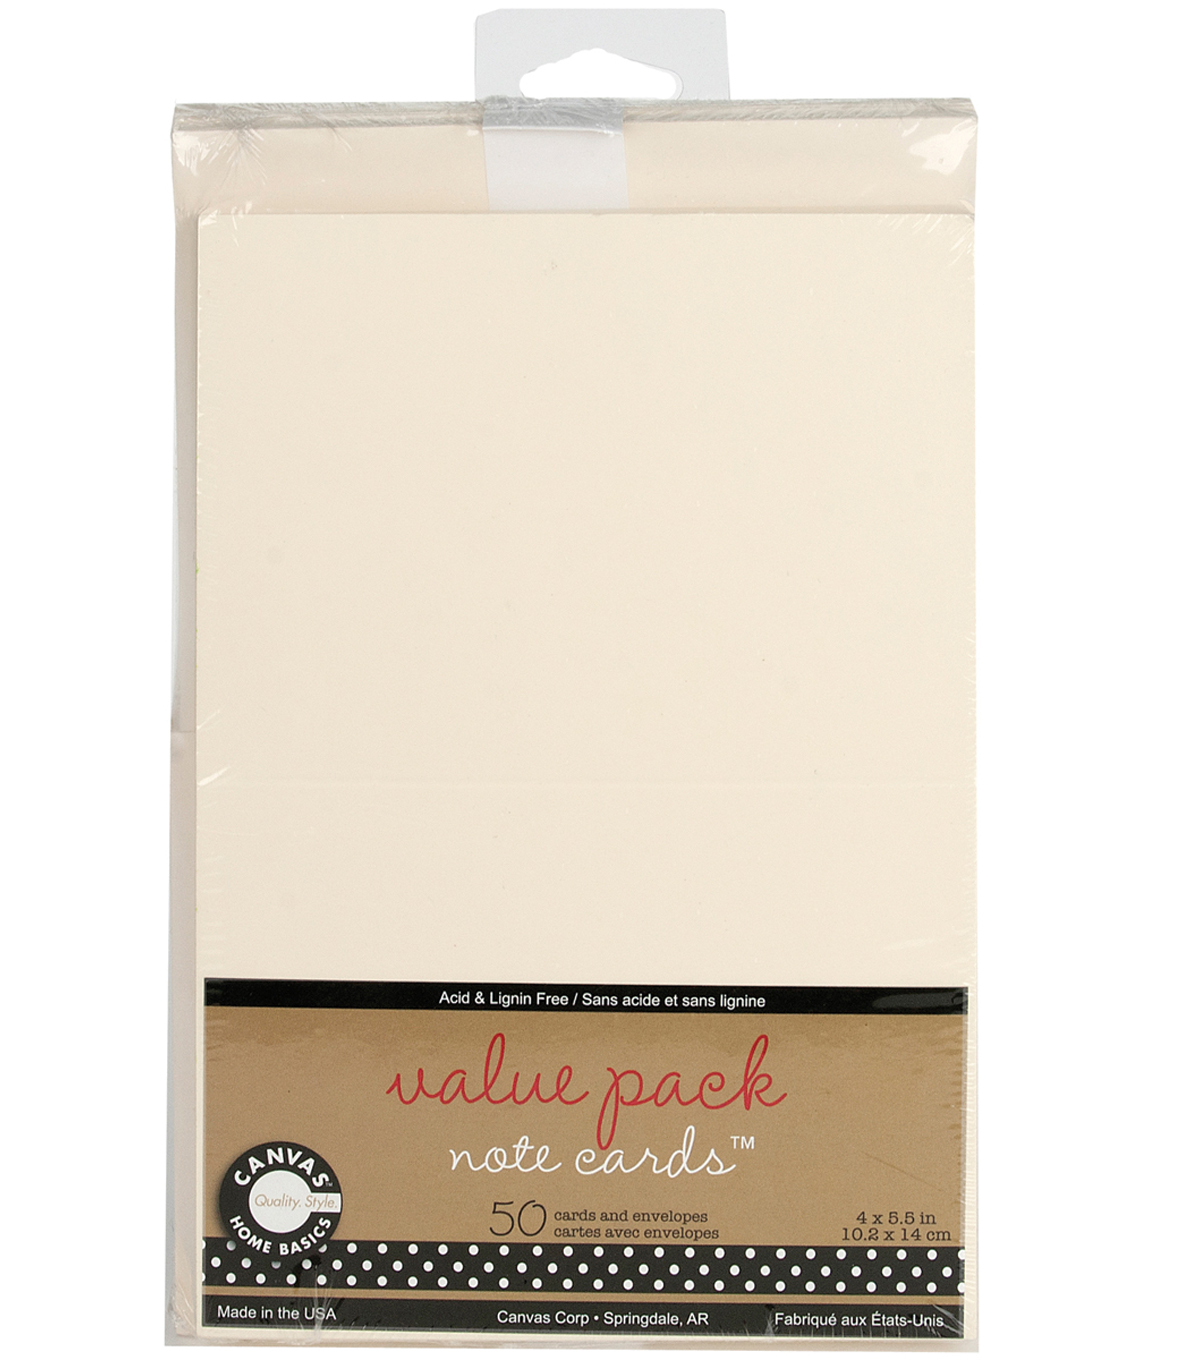 Value Pack Cards & Envelopes